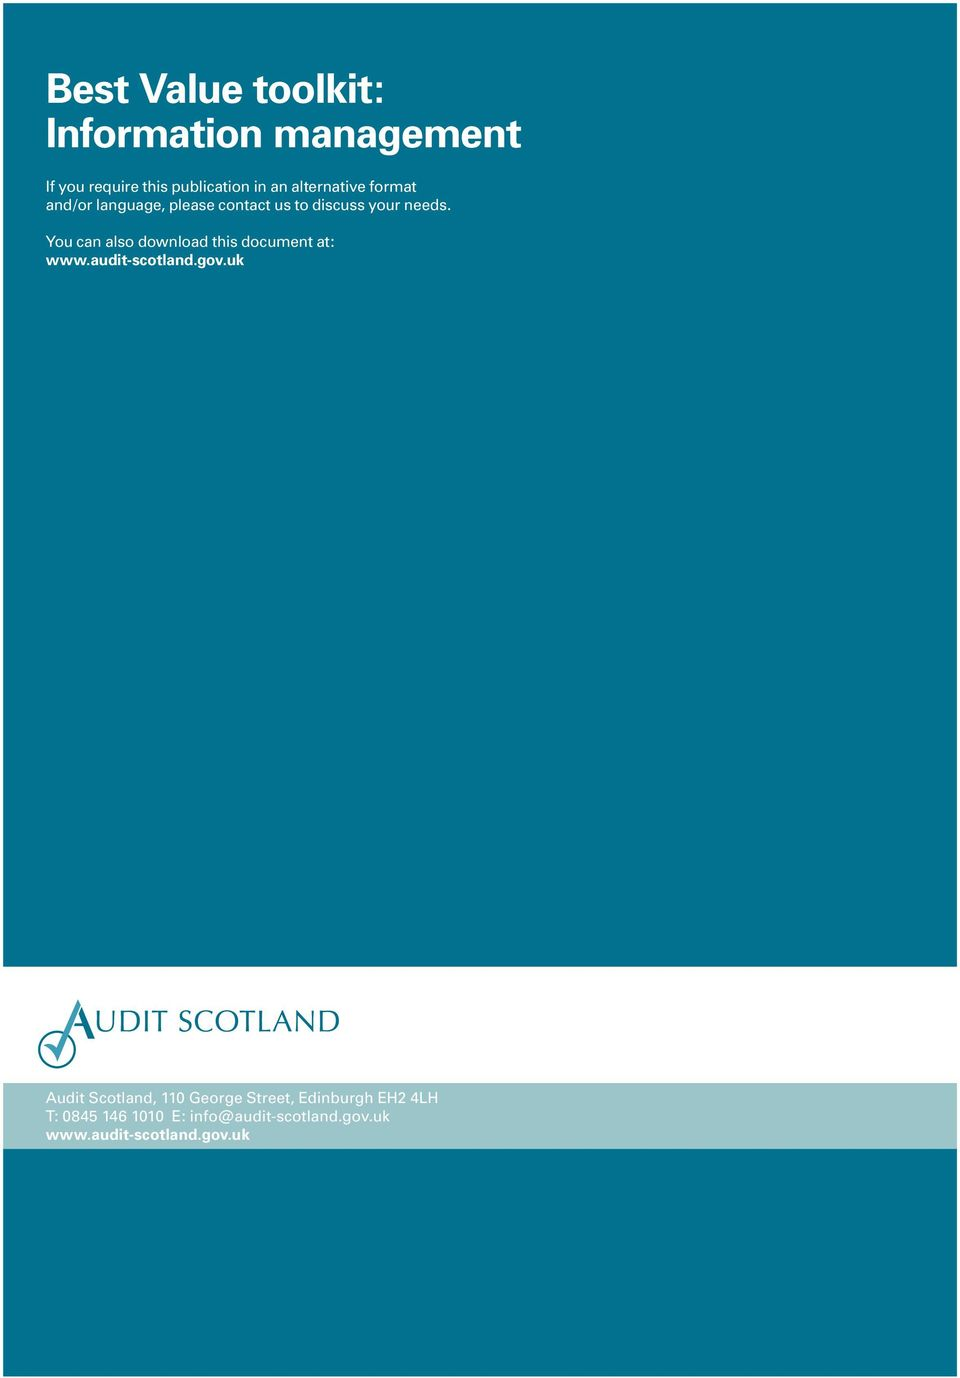 You can also download this document at: www.audit-scotland.gov.